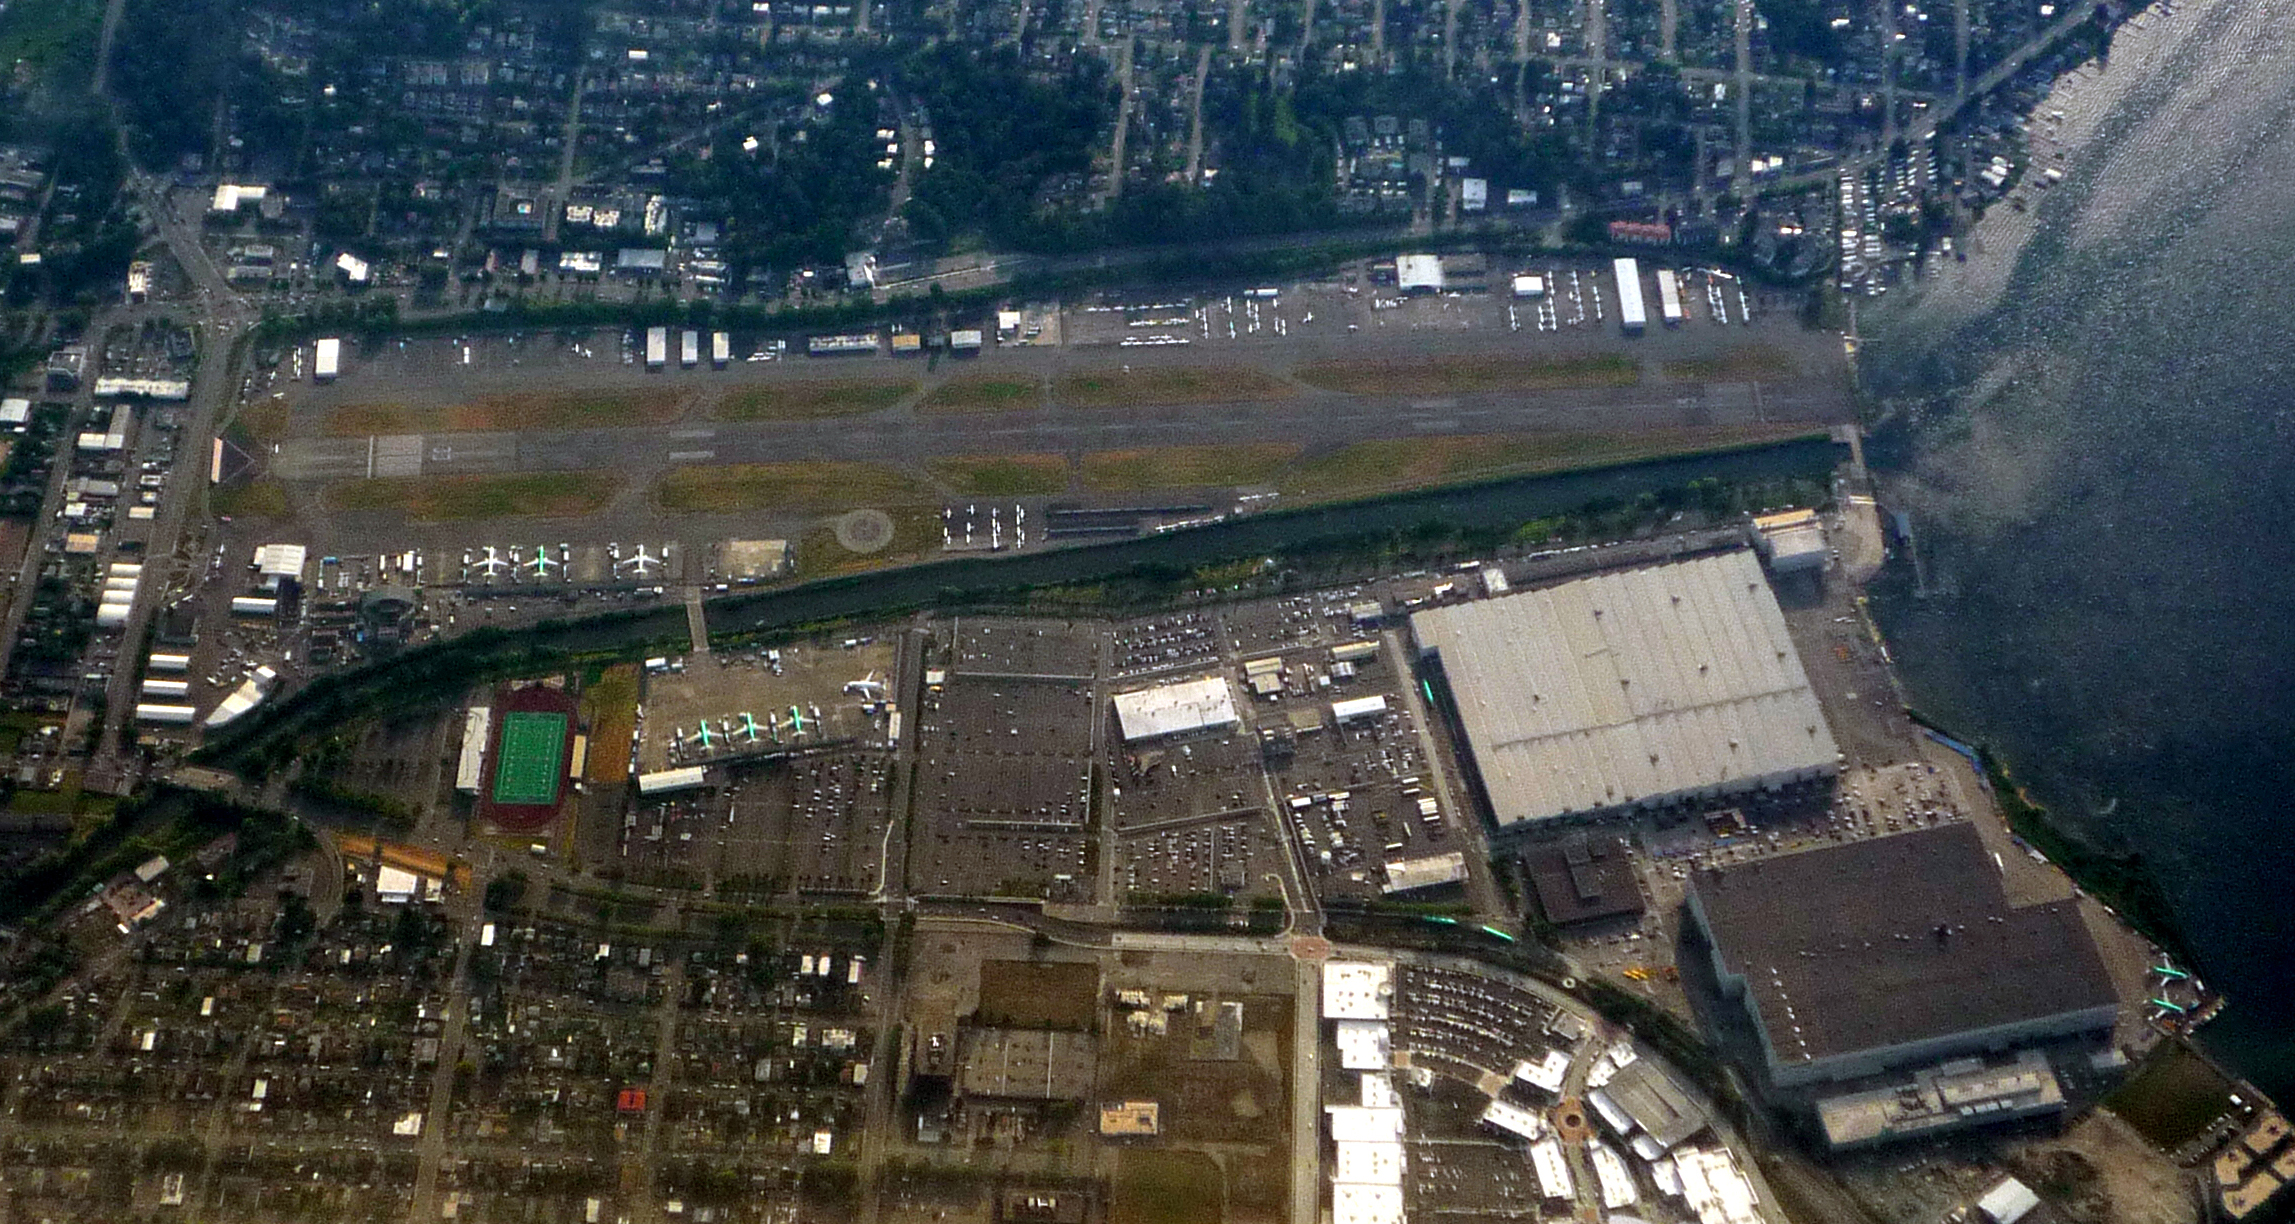 Showing airport and adjacent boeing renton factory large structures